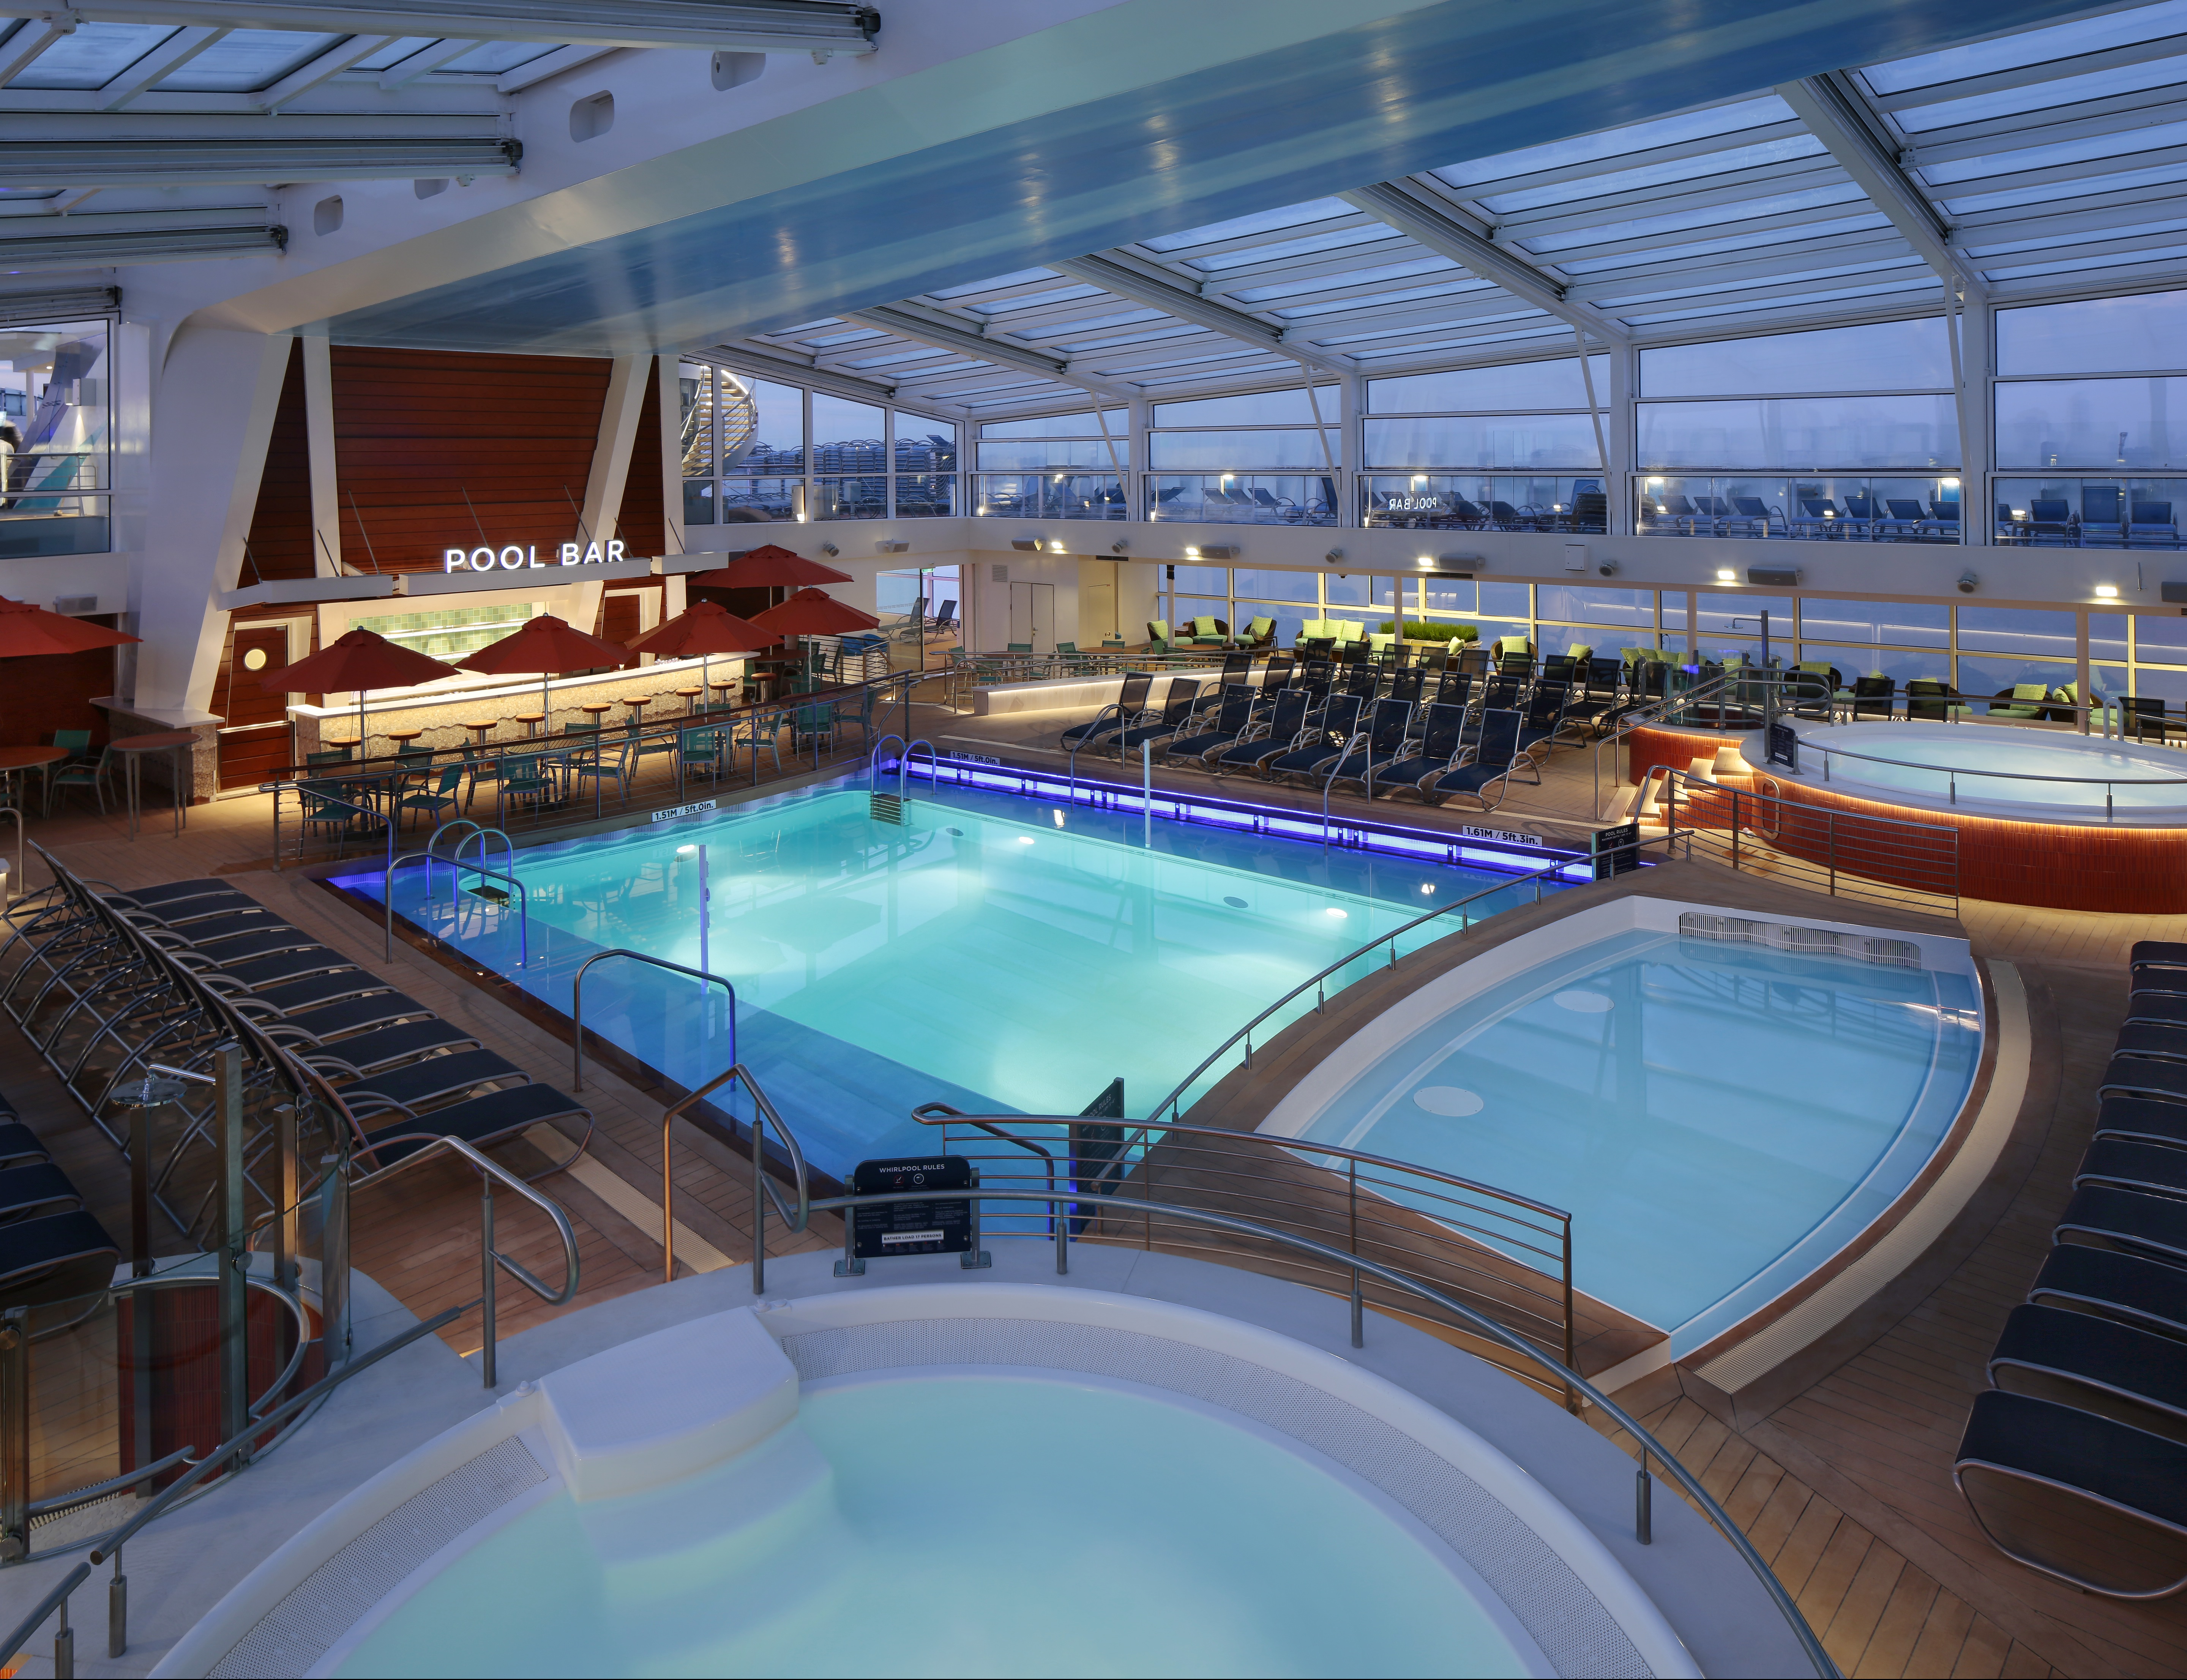 Royal Caribbean International Quantum of the Seas Exterior Pool Solarium 1.jpg